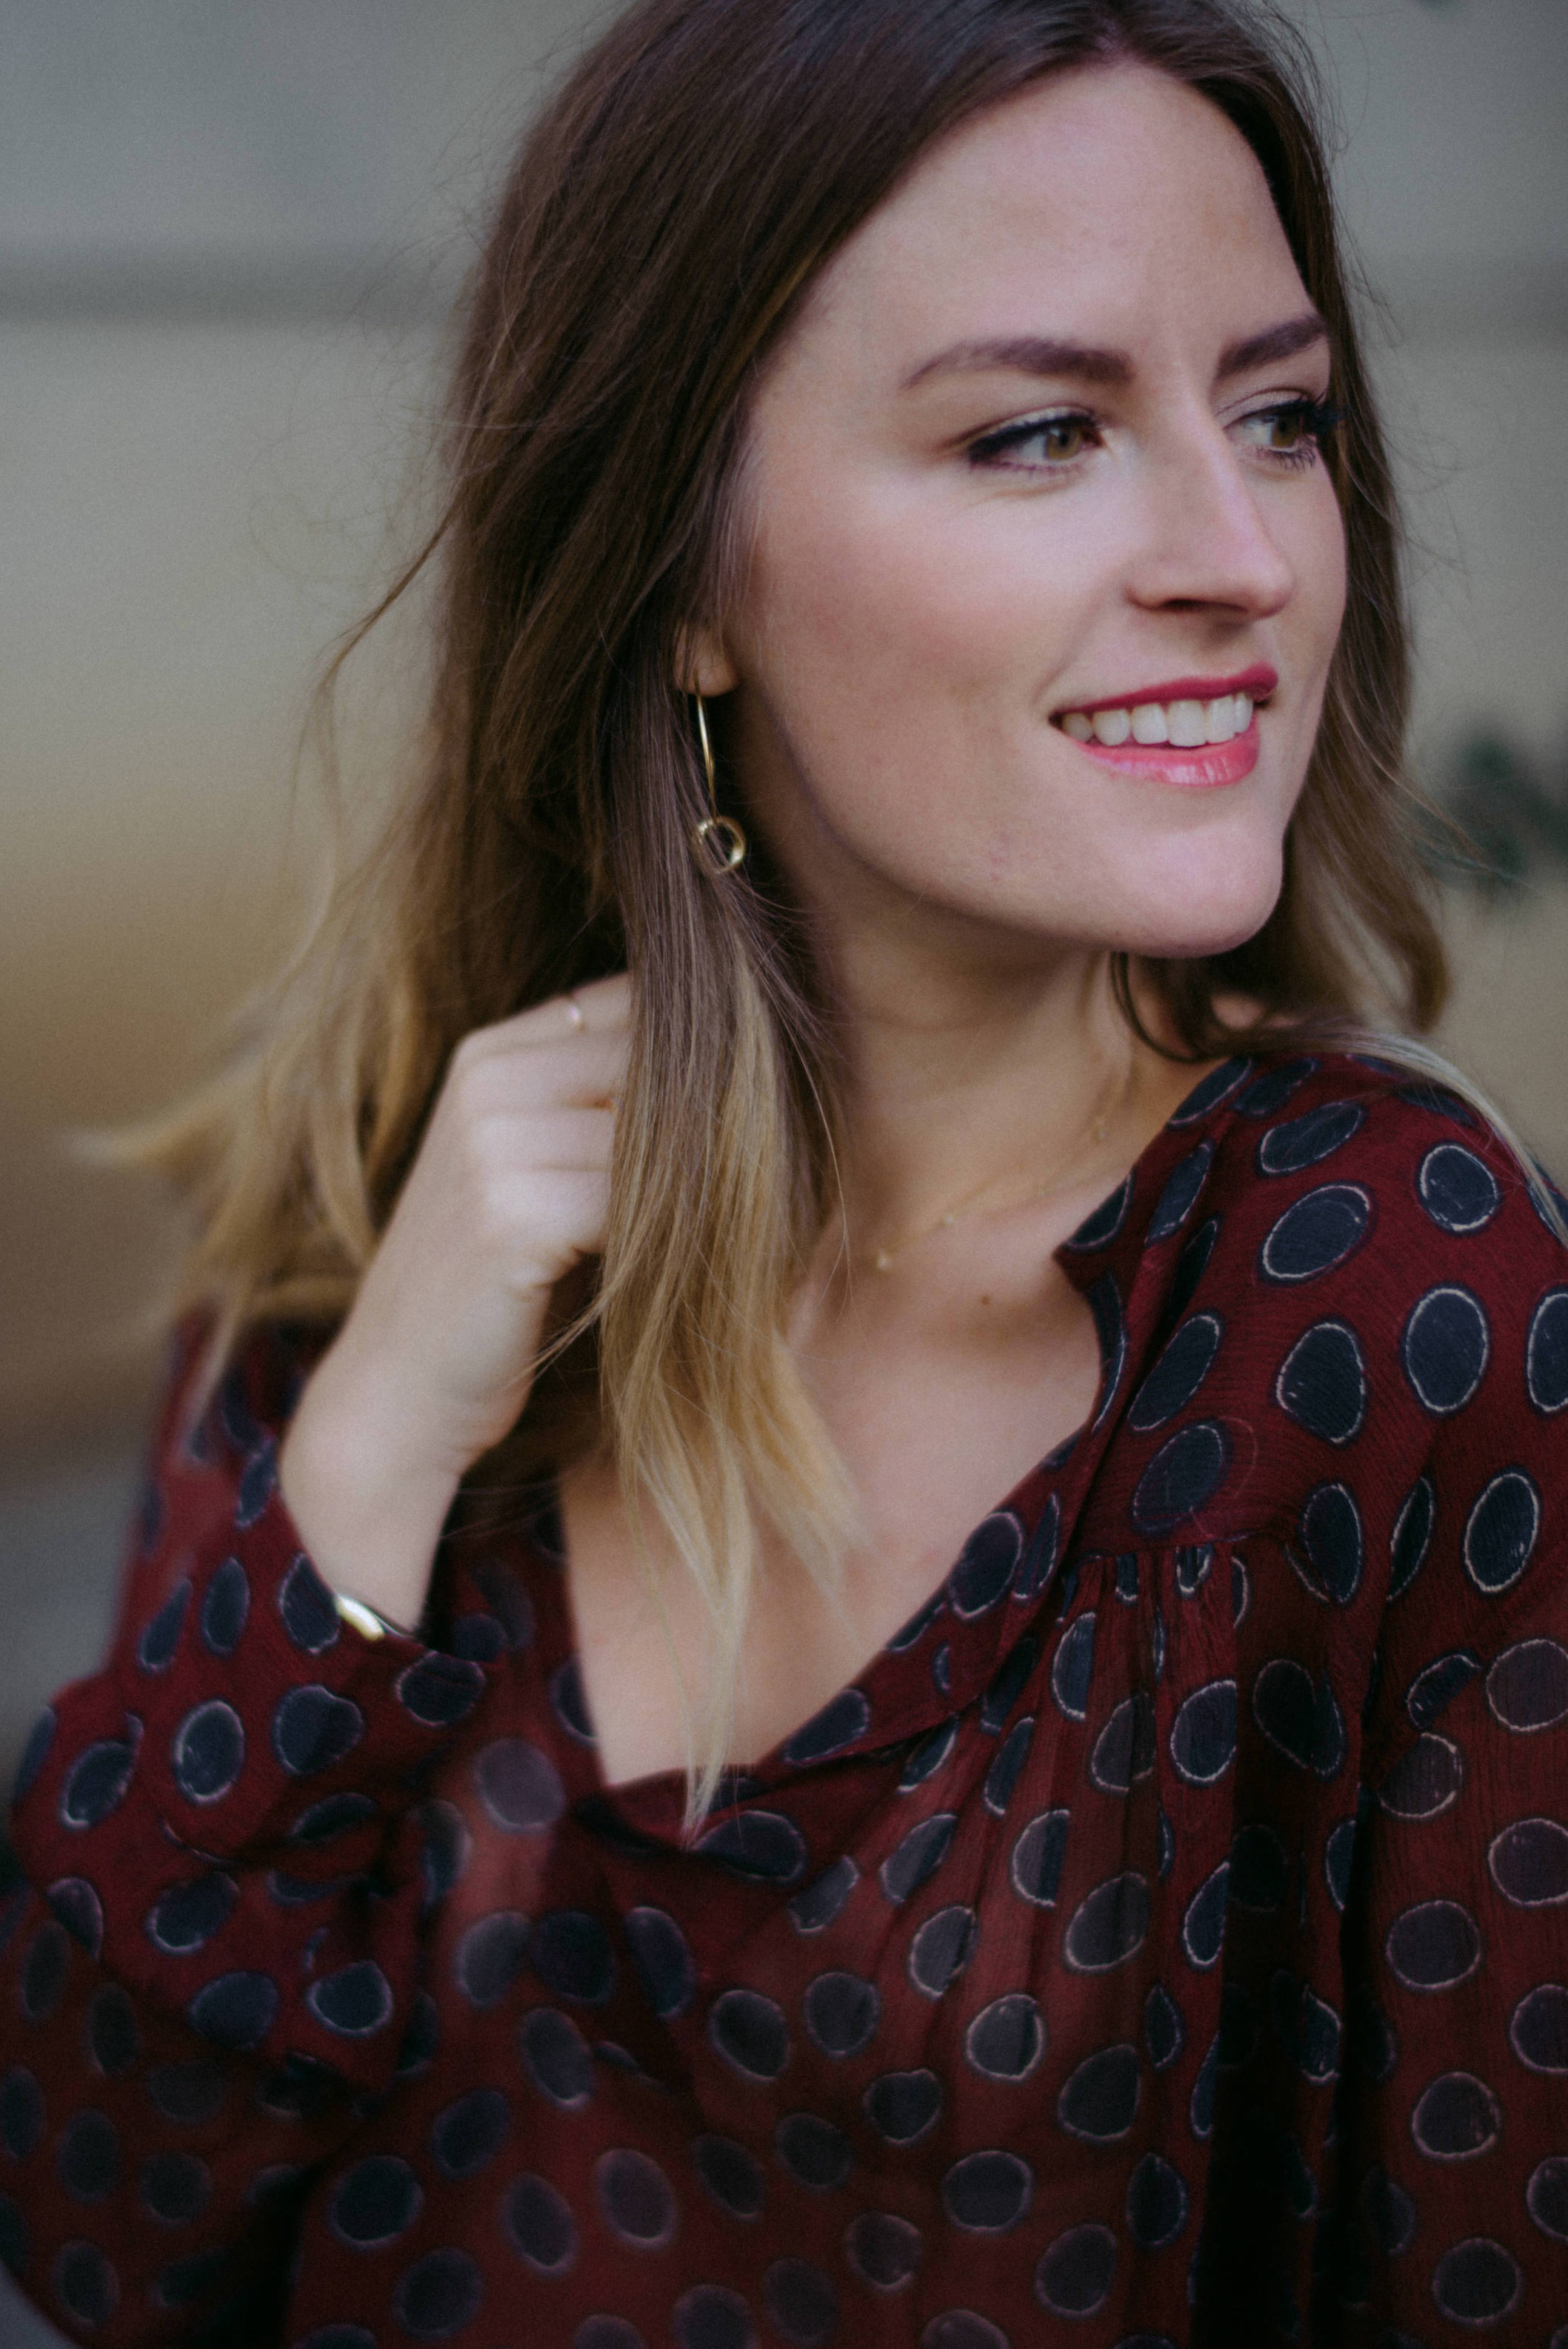 Gold double hoop earrings // A Week Of  Nashville-Chic Ethical Outfits With Jordan Soderholm, Fashion Director At ABLE on The Good Trade